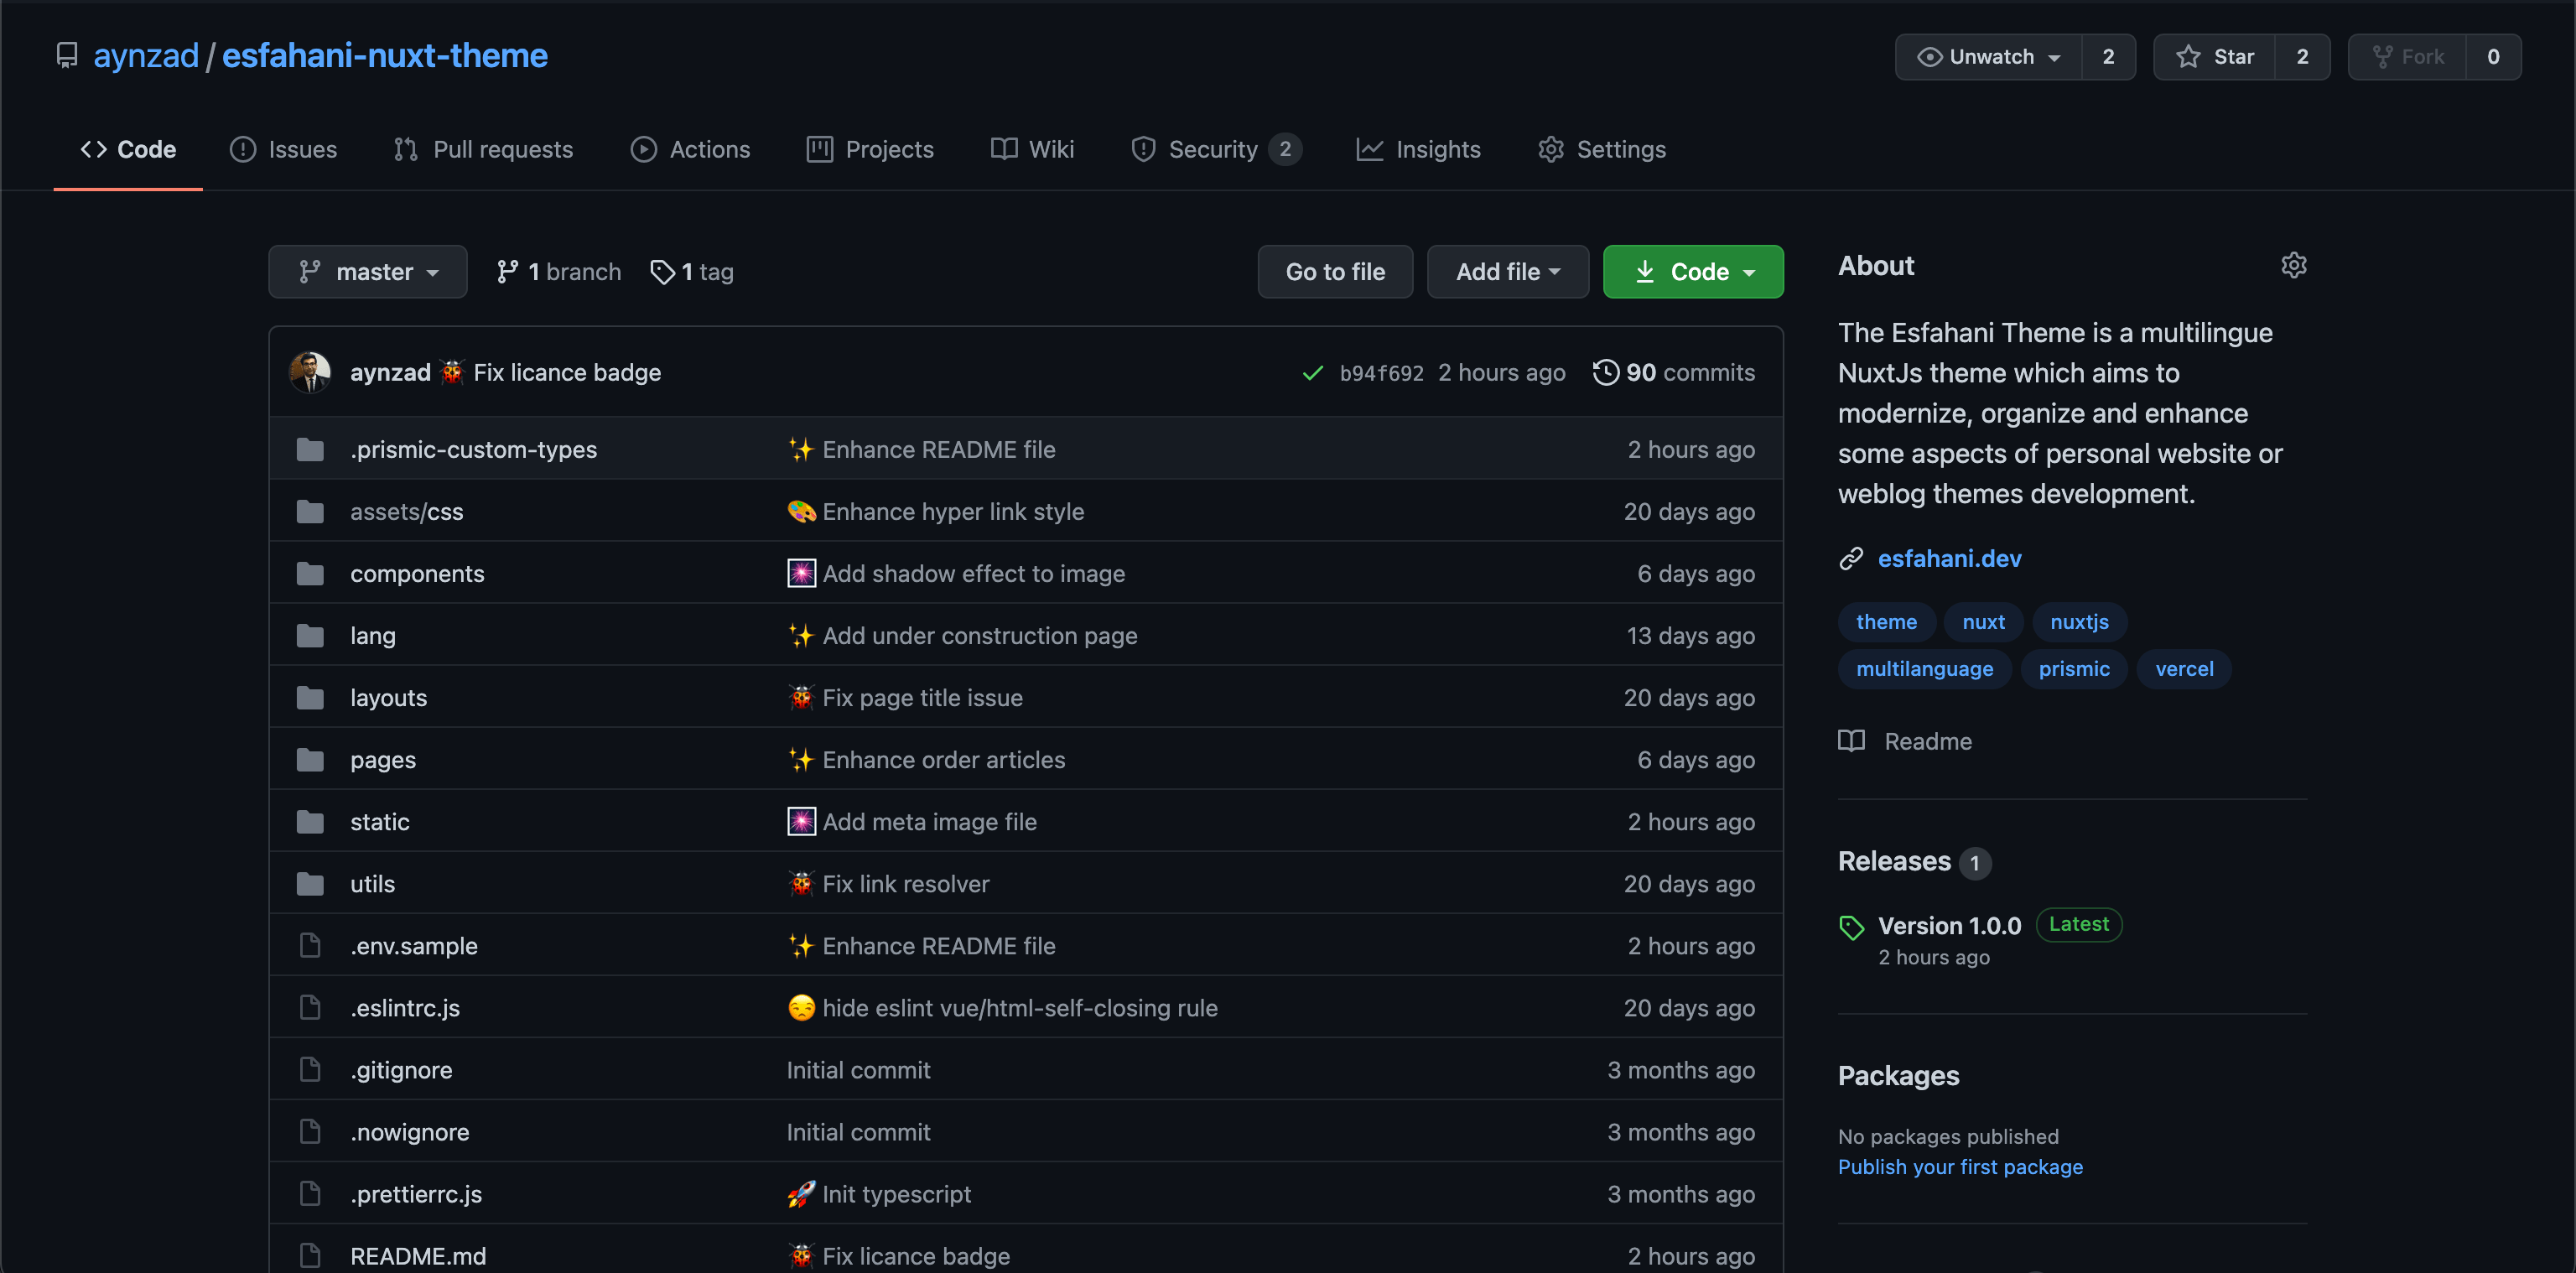 The github repo of this project